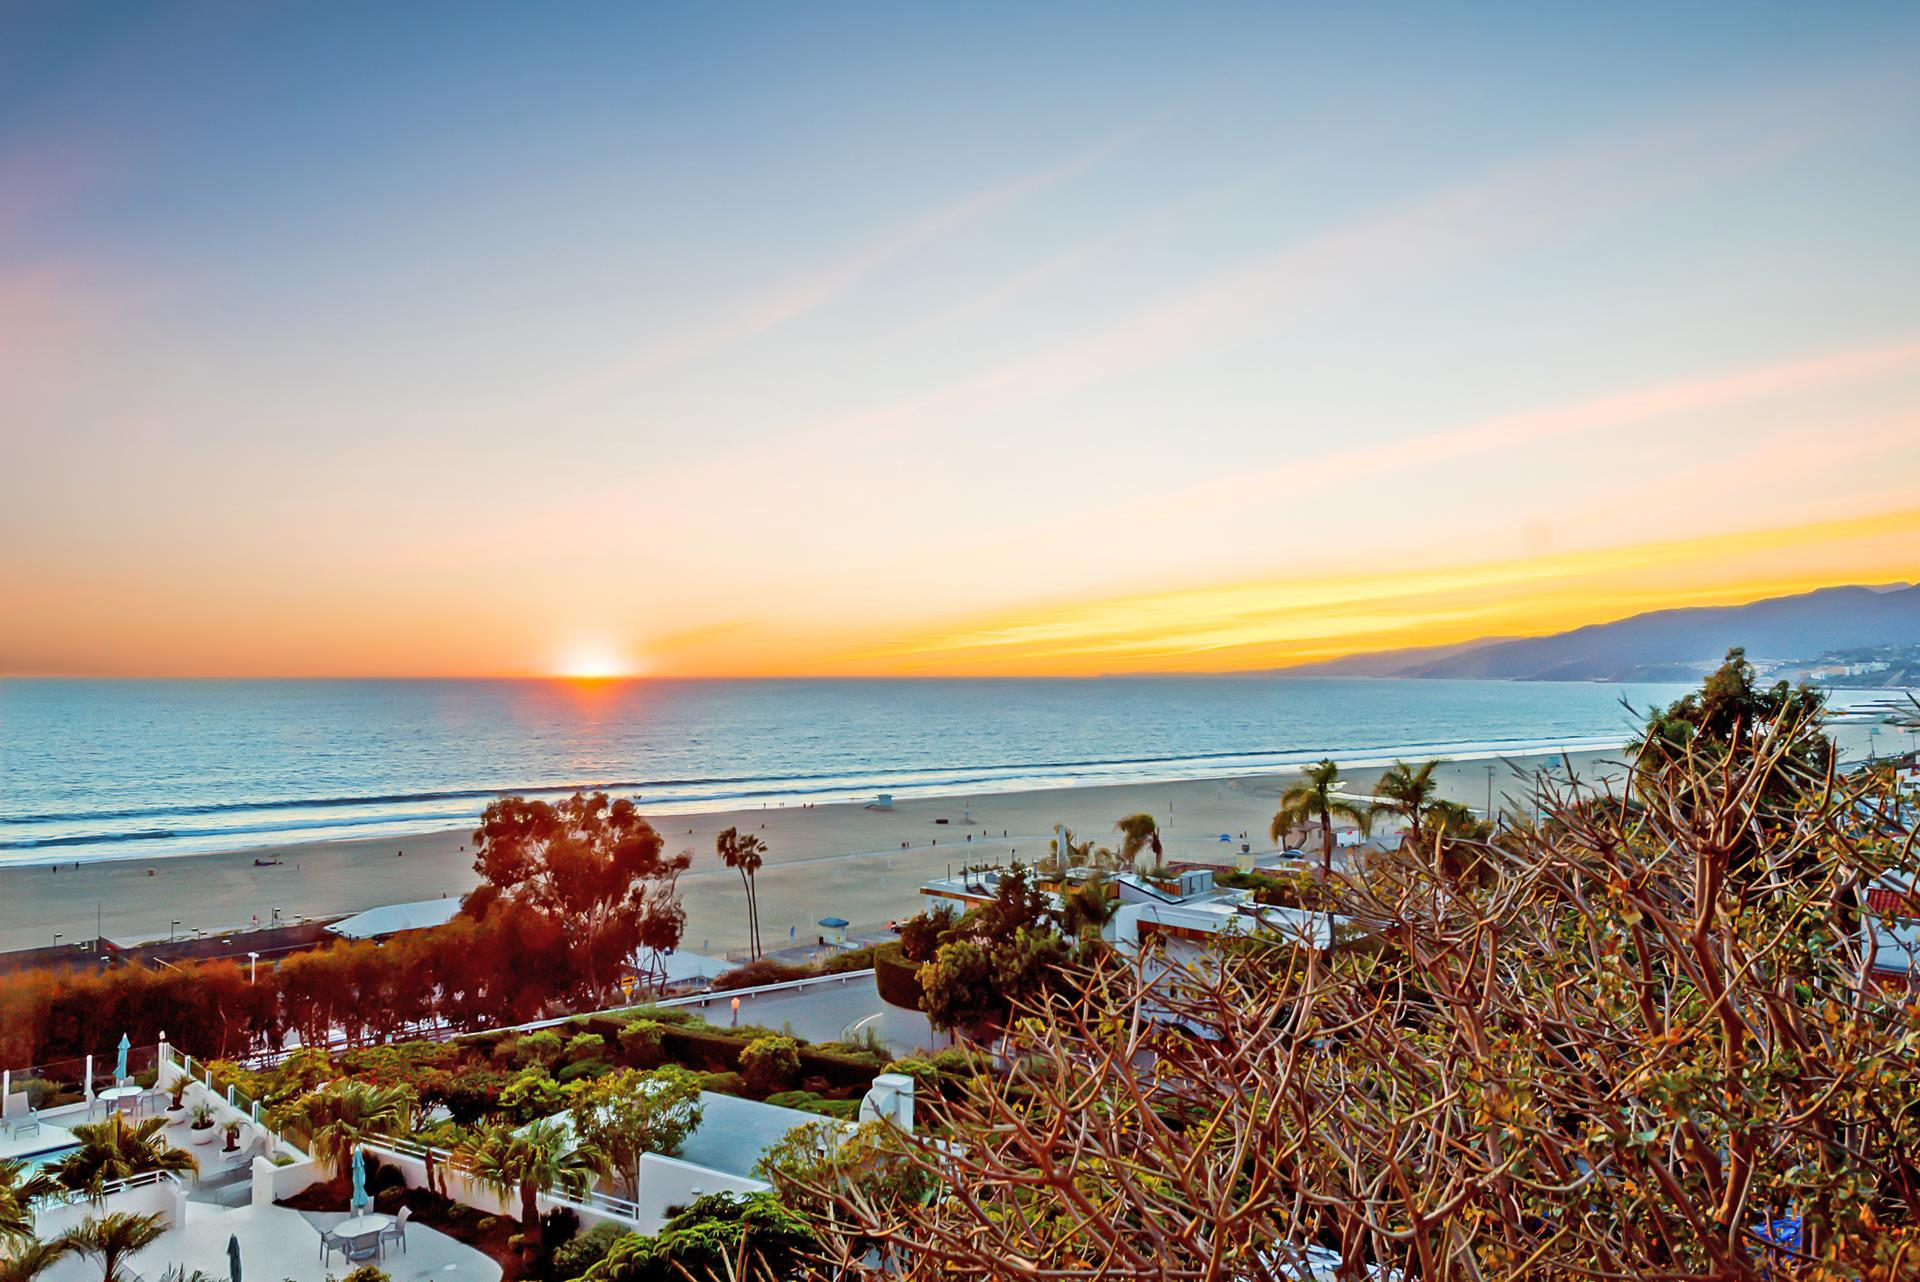 101 OCEAN Avenue, E301 - Santa Monica, California